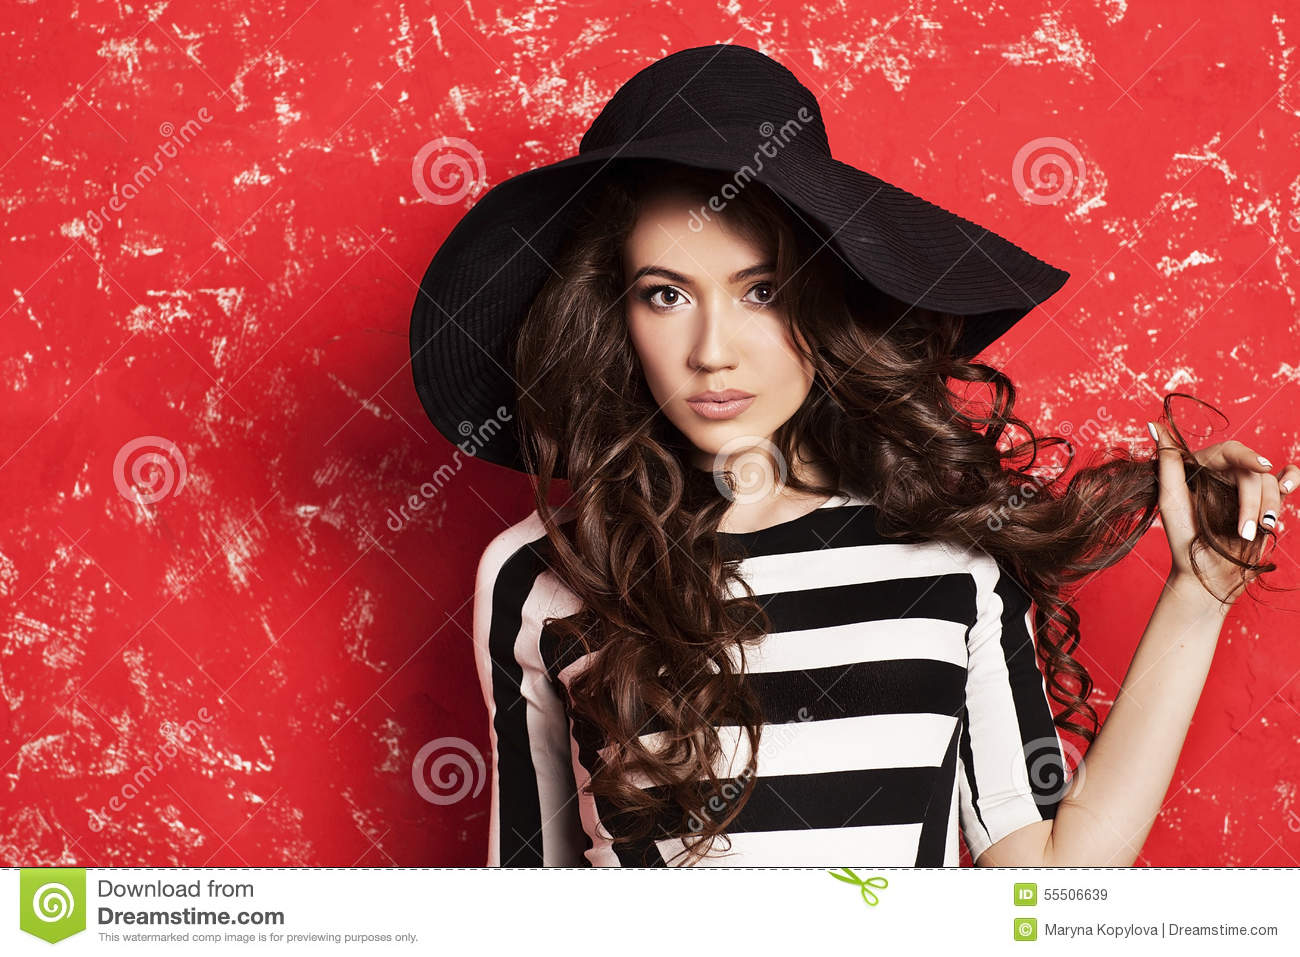 Black and white stripes. Stylish fashion model. Face close up. Big hat.  Colorful picture. 534cecc58b3